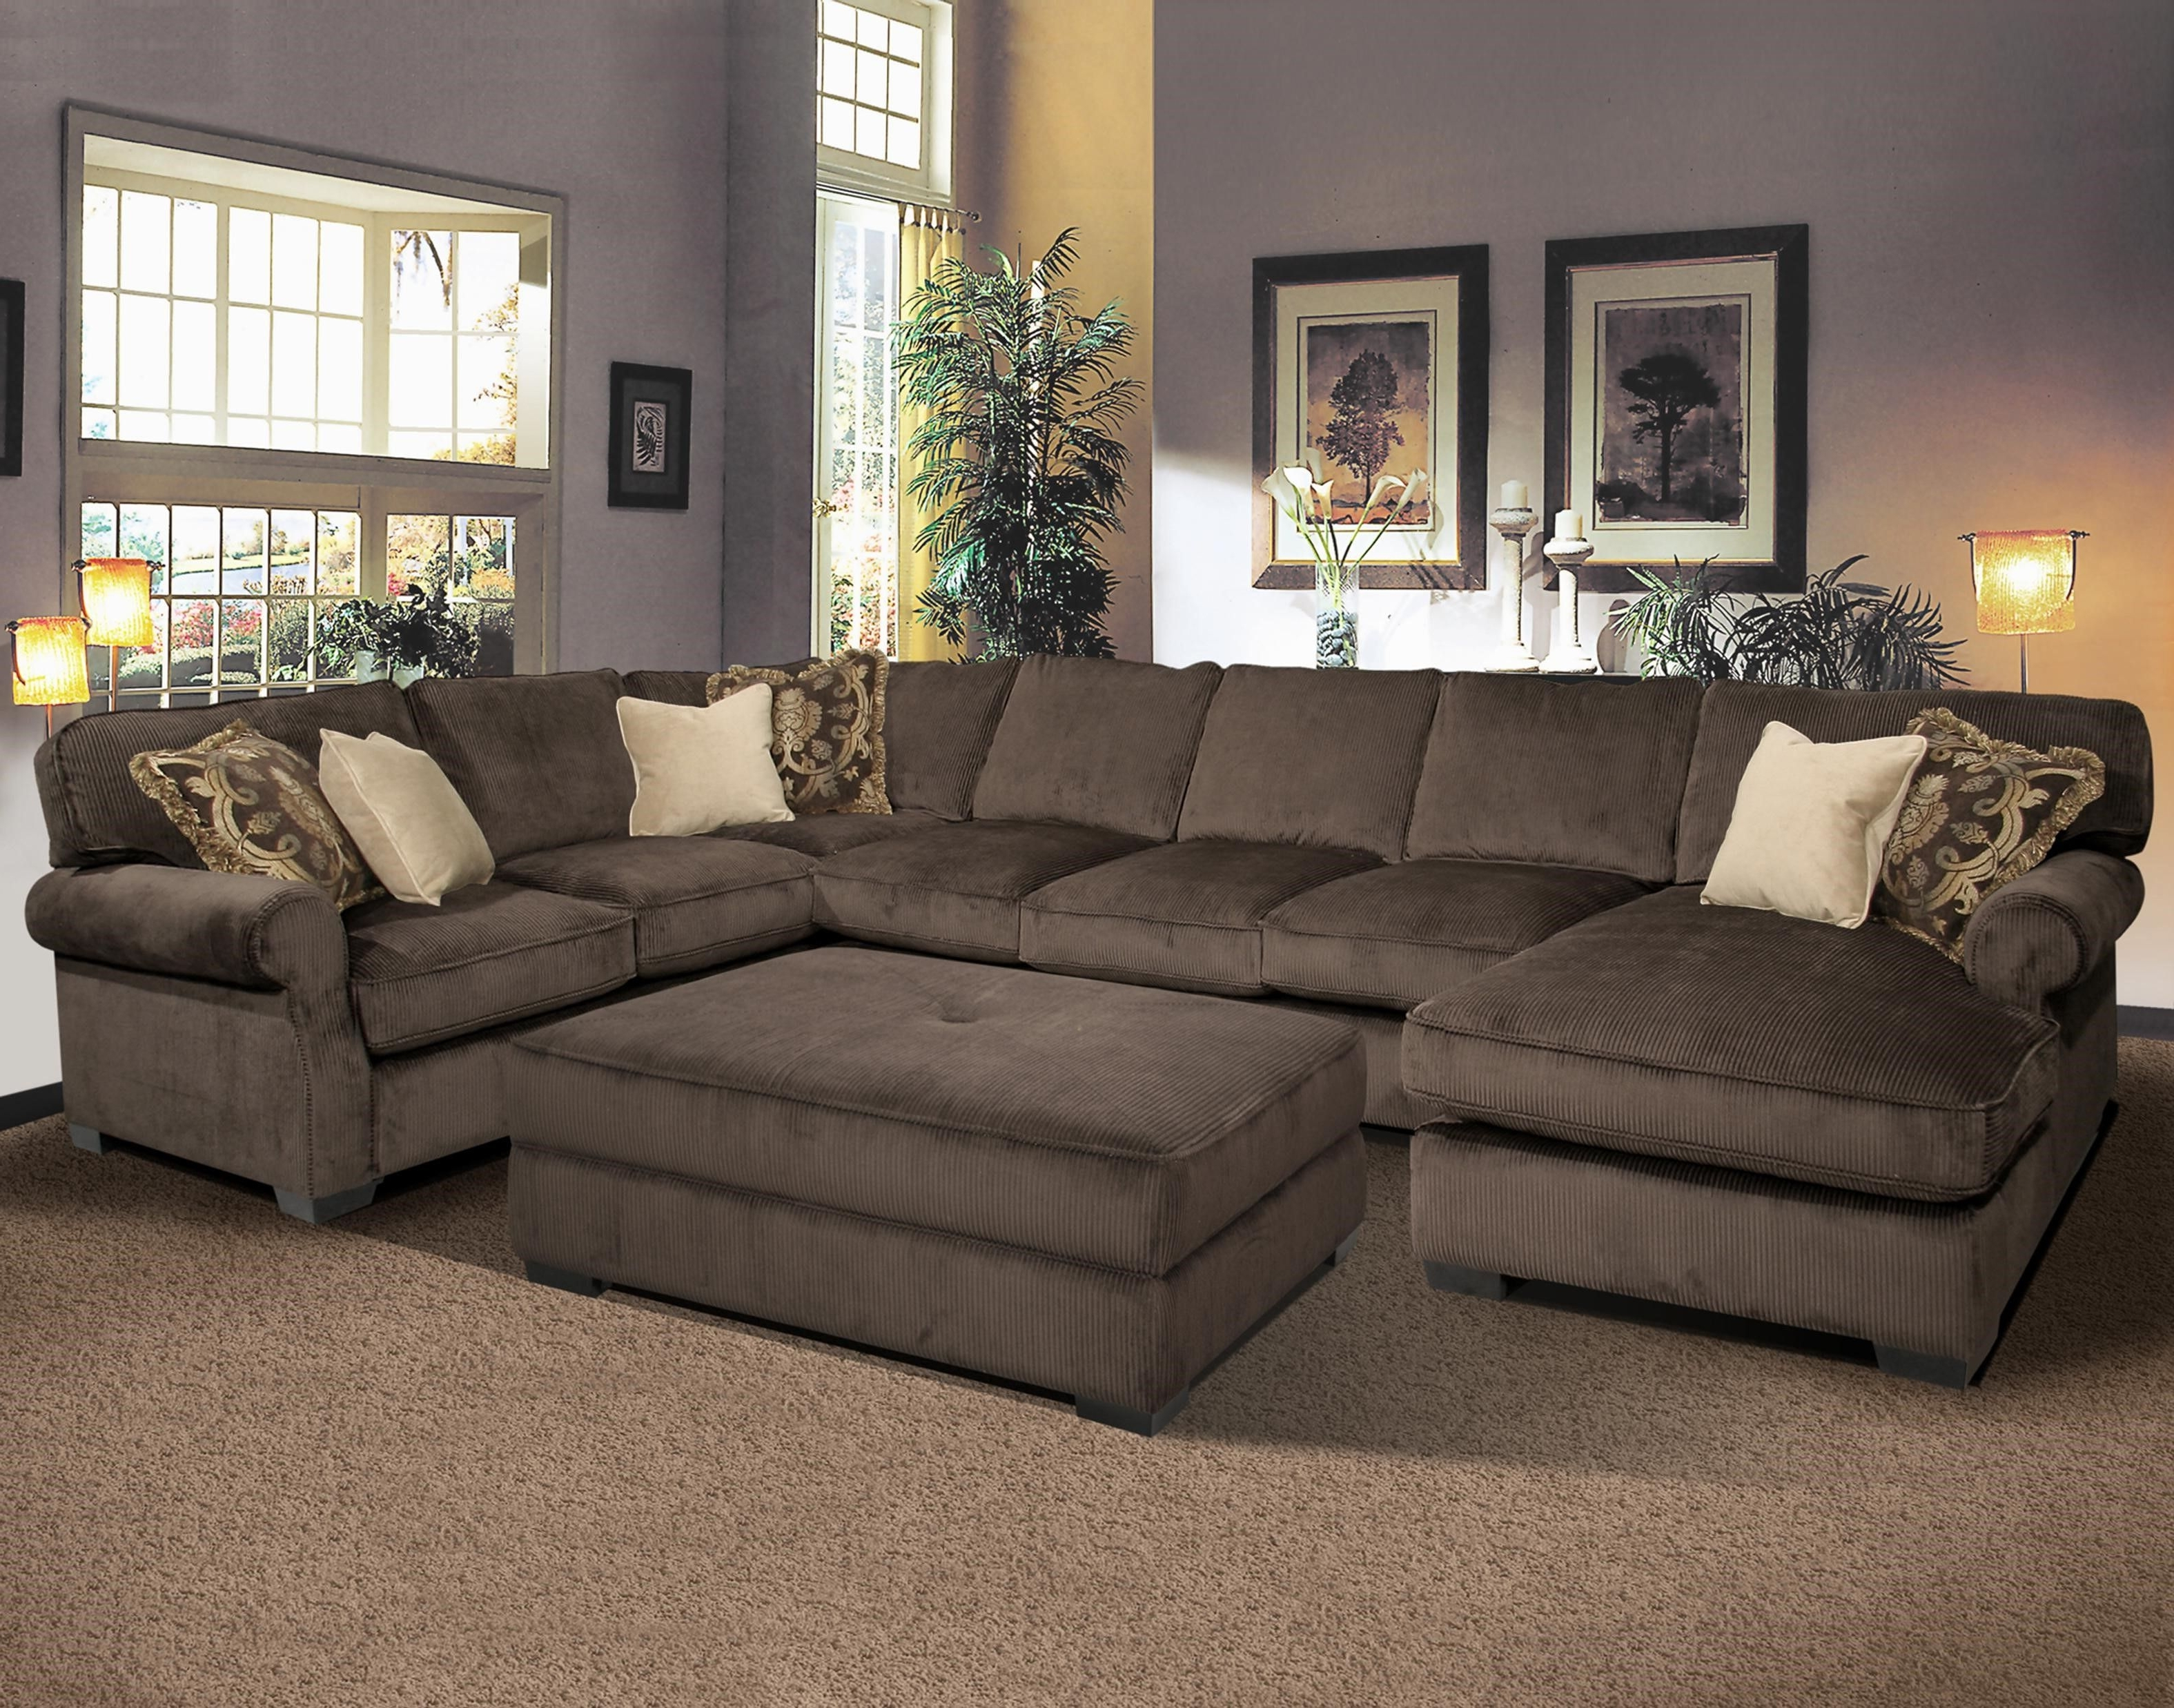 Preferred Elegant Sectional Sofas In Comfortable Living Room Sofas Design With Elegant Overstuffed (View 14 of 20)